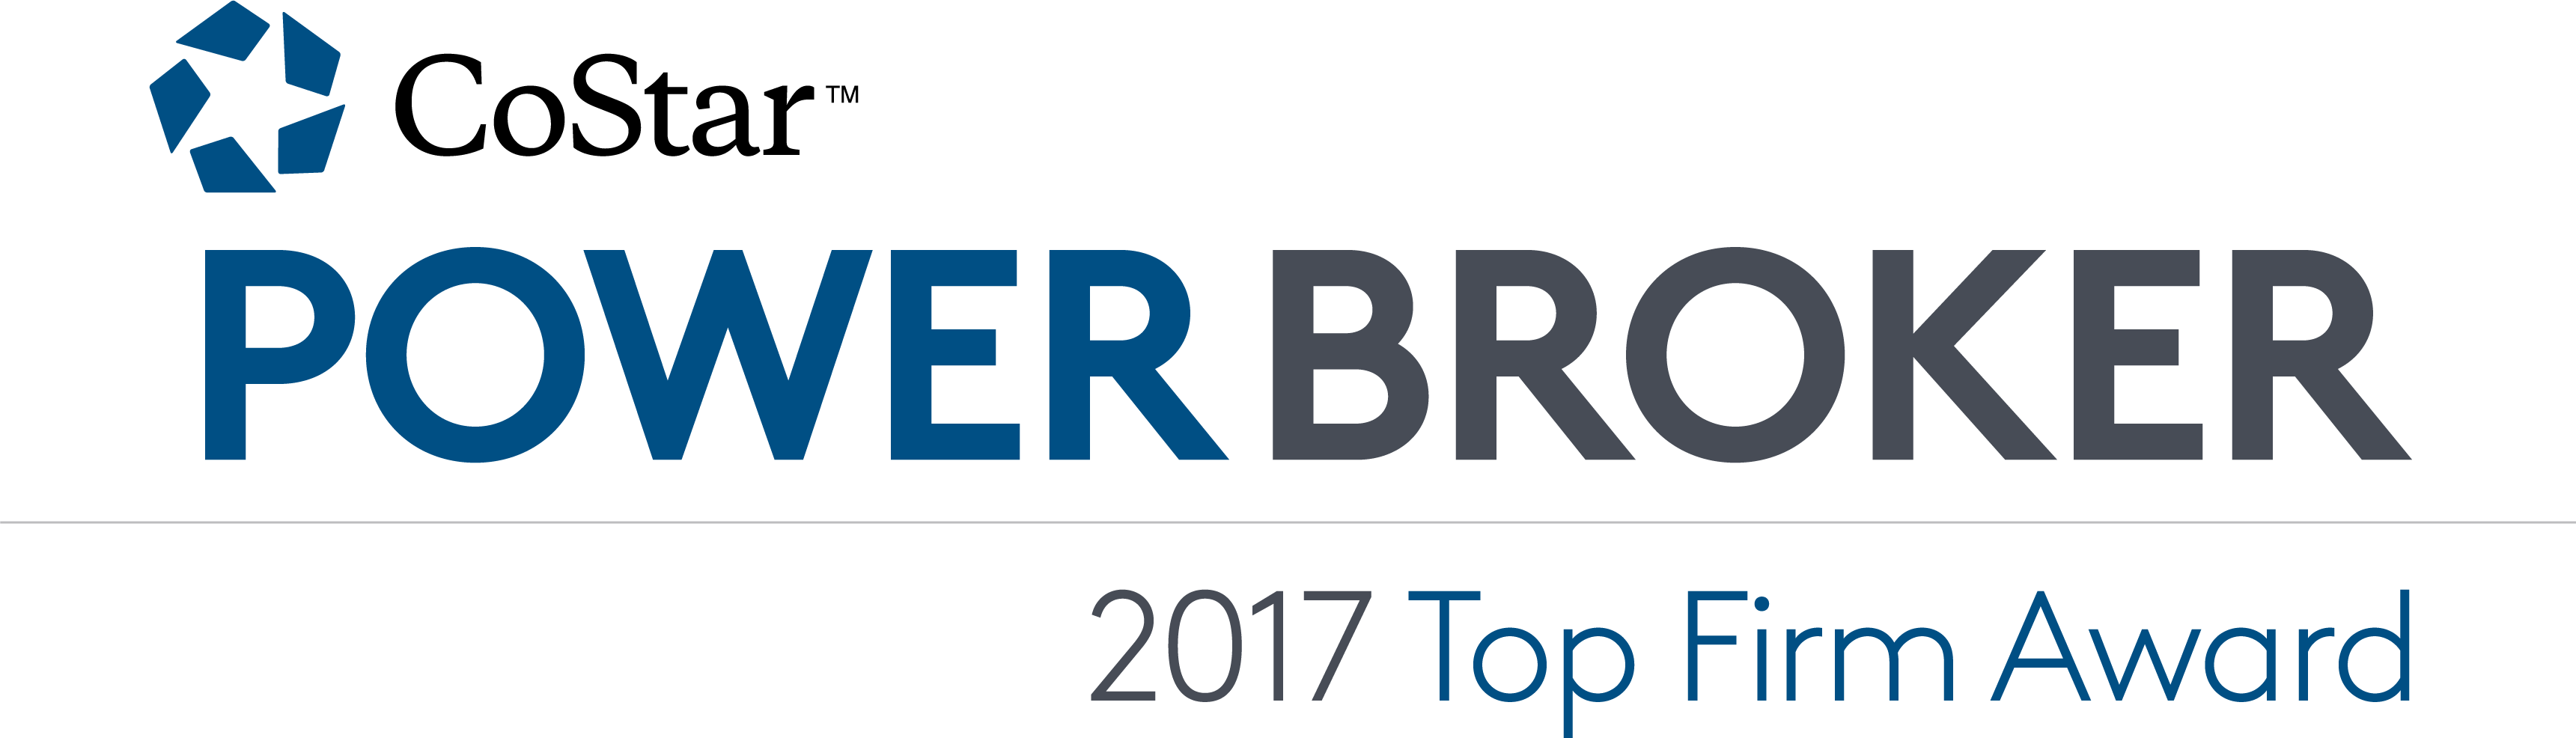 2017 Power Broker Top Firm Award